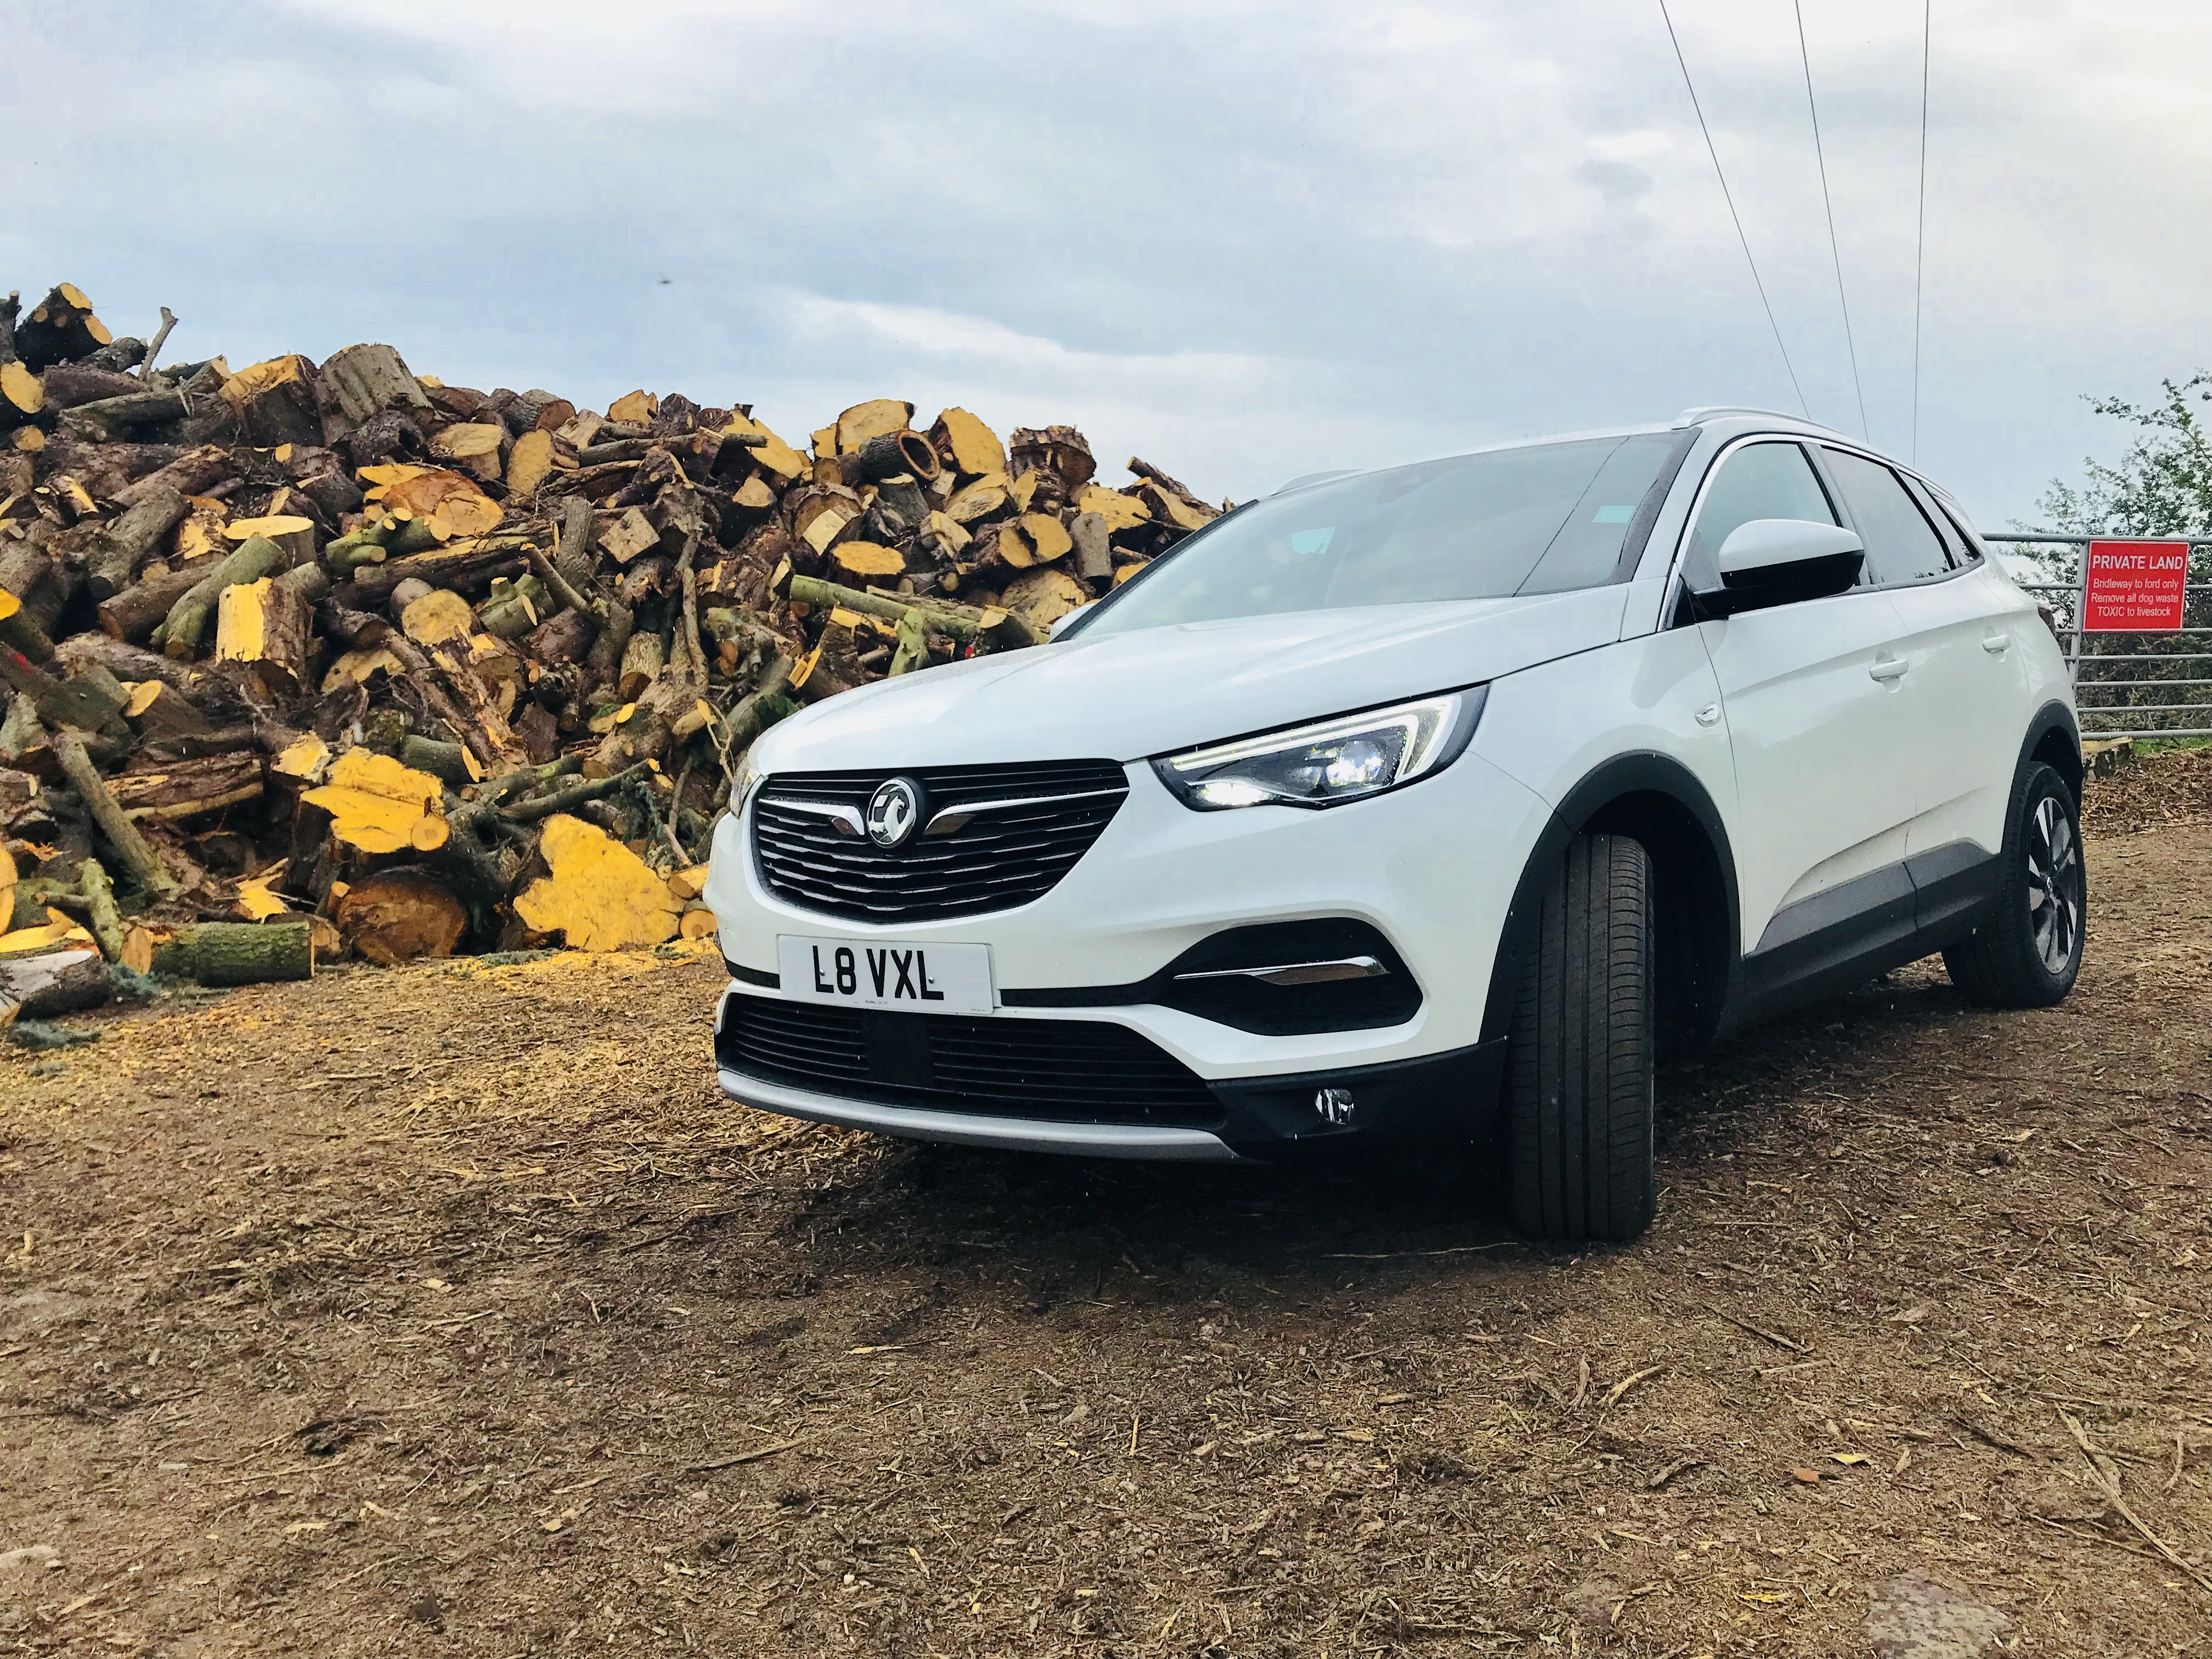 Vauxhall Grandland X, 4x4, SUV, Car in field, Car in front of Logs, New car